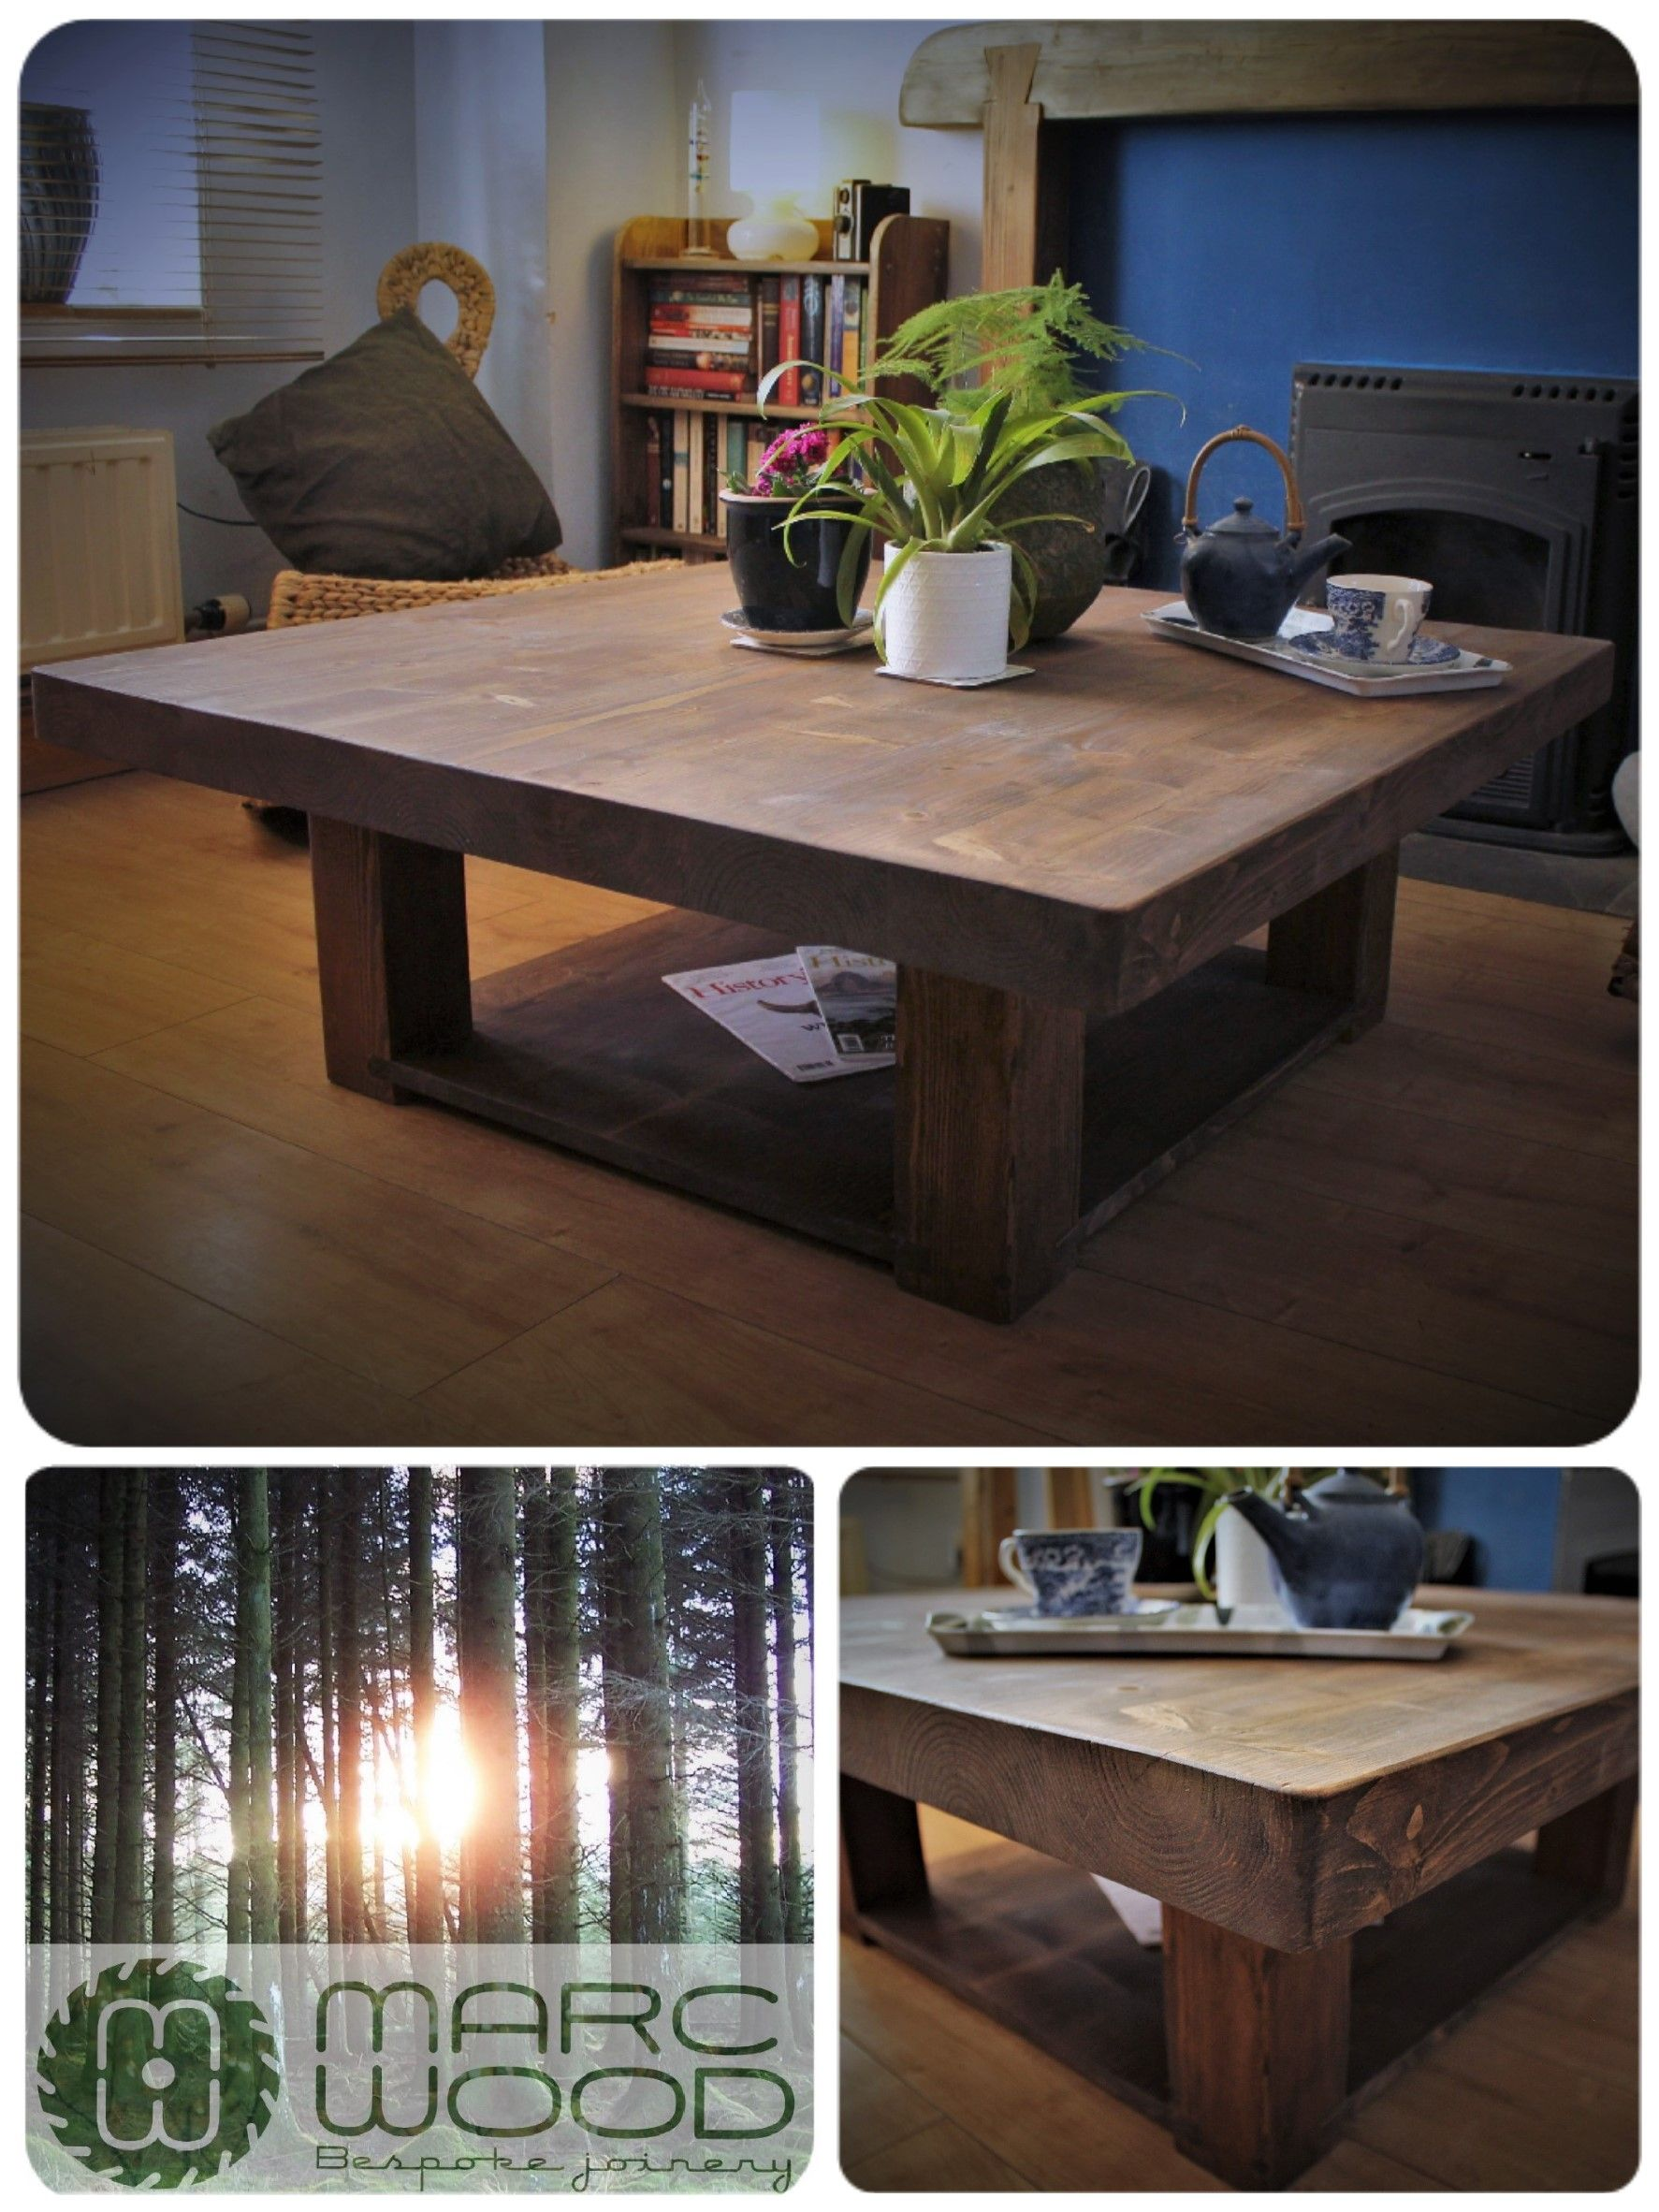 Pin On Crafts Home Projects Living room table handmade